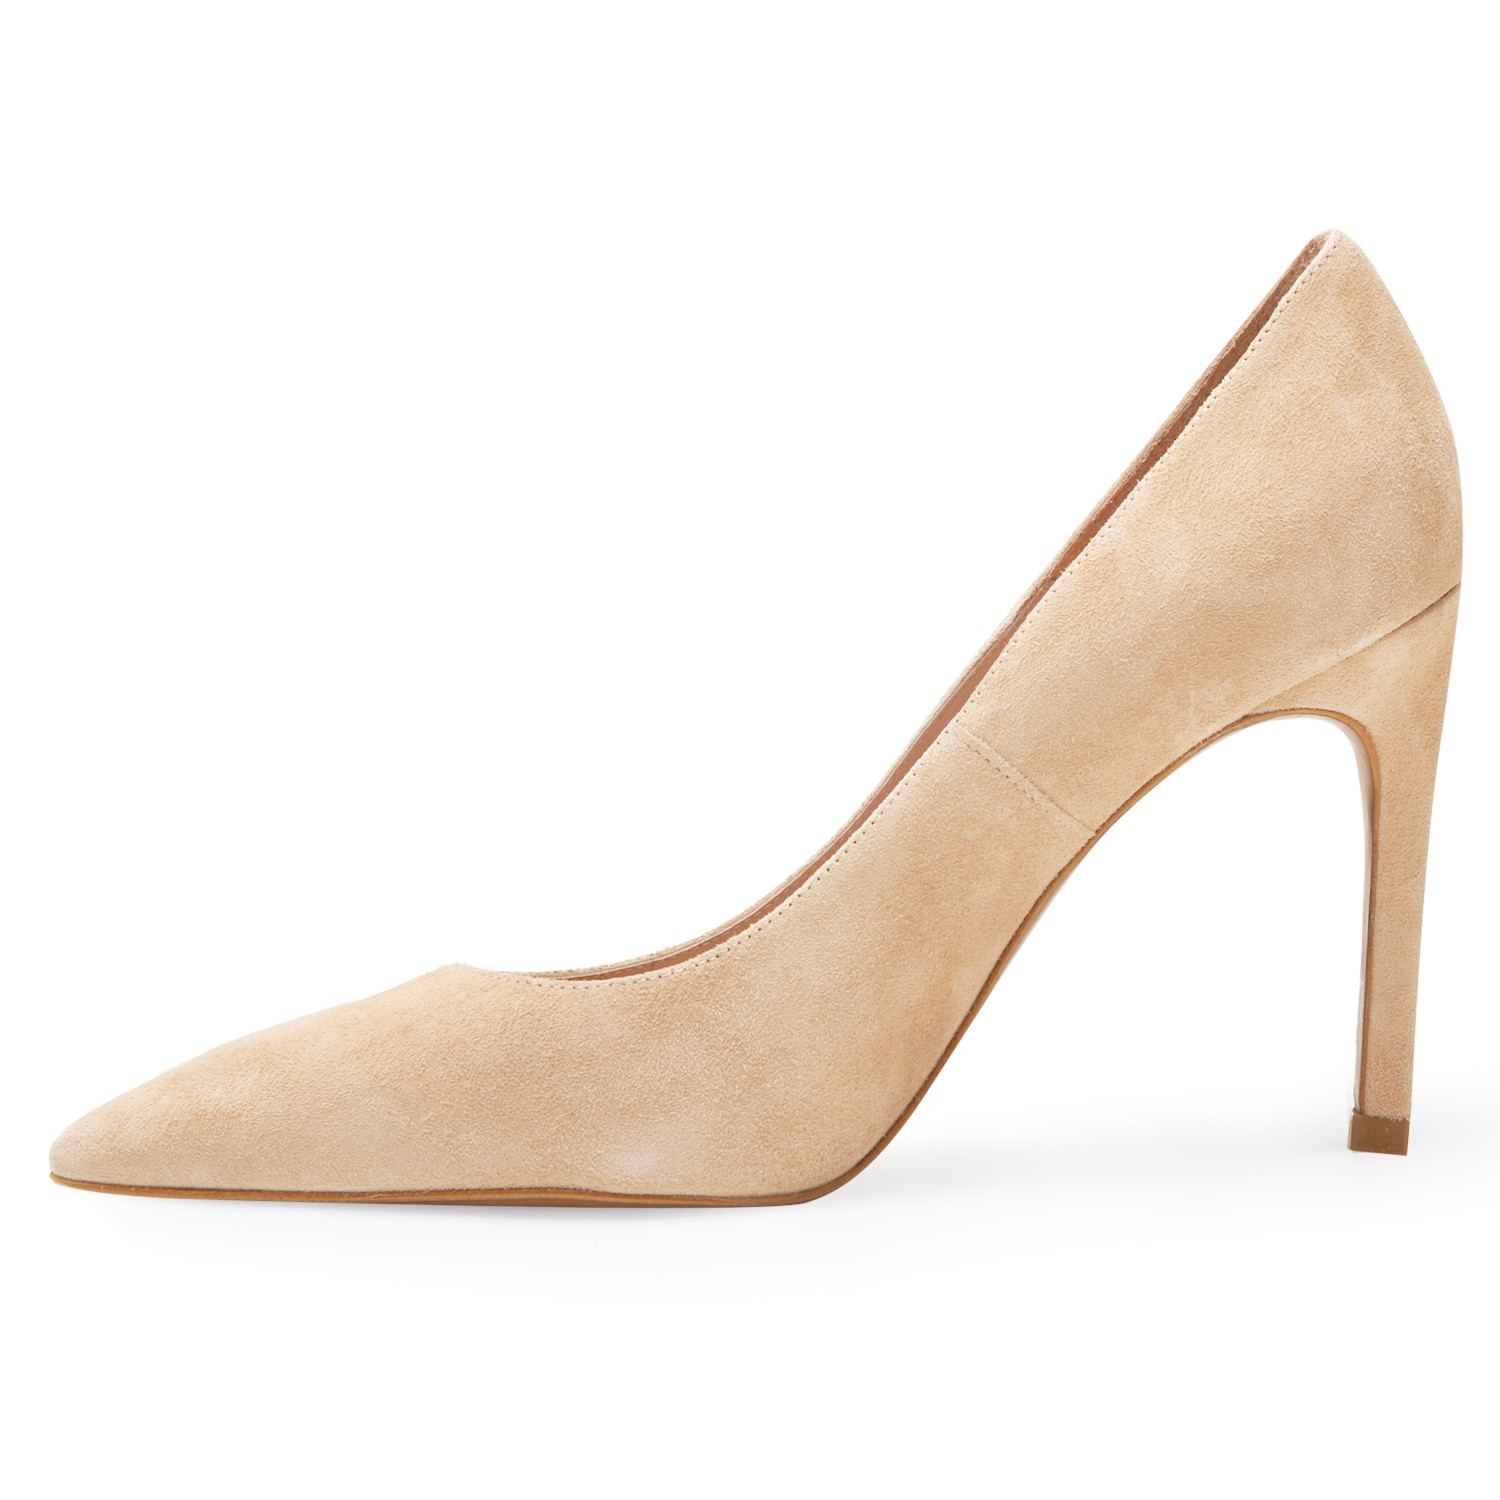 ac47690edff Whistles Cornel High Heeled Stiletto Court Shoes in Natural - Lyst